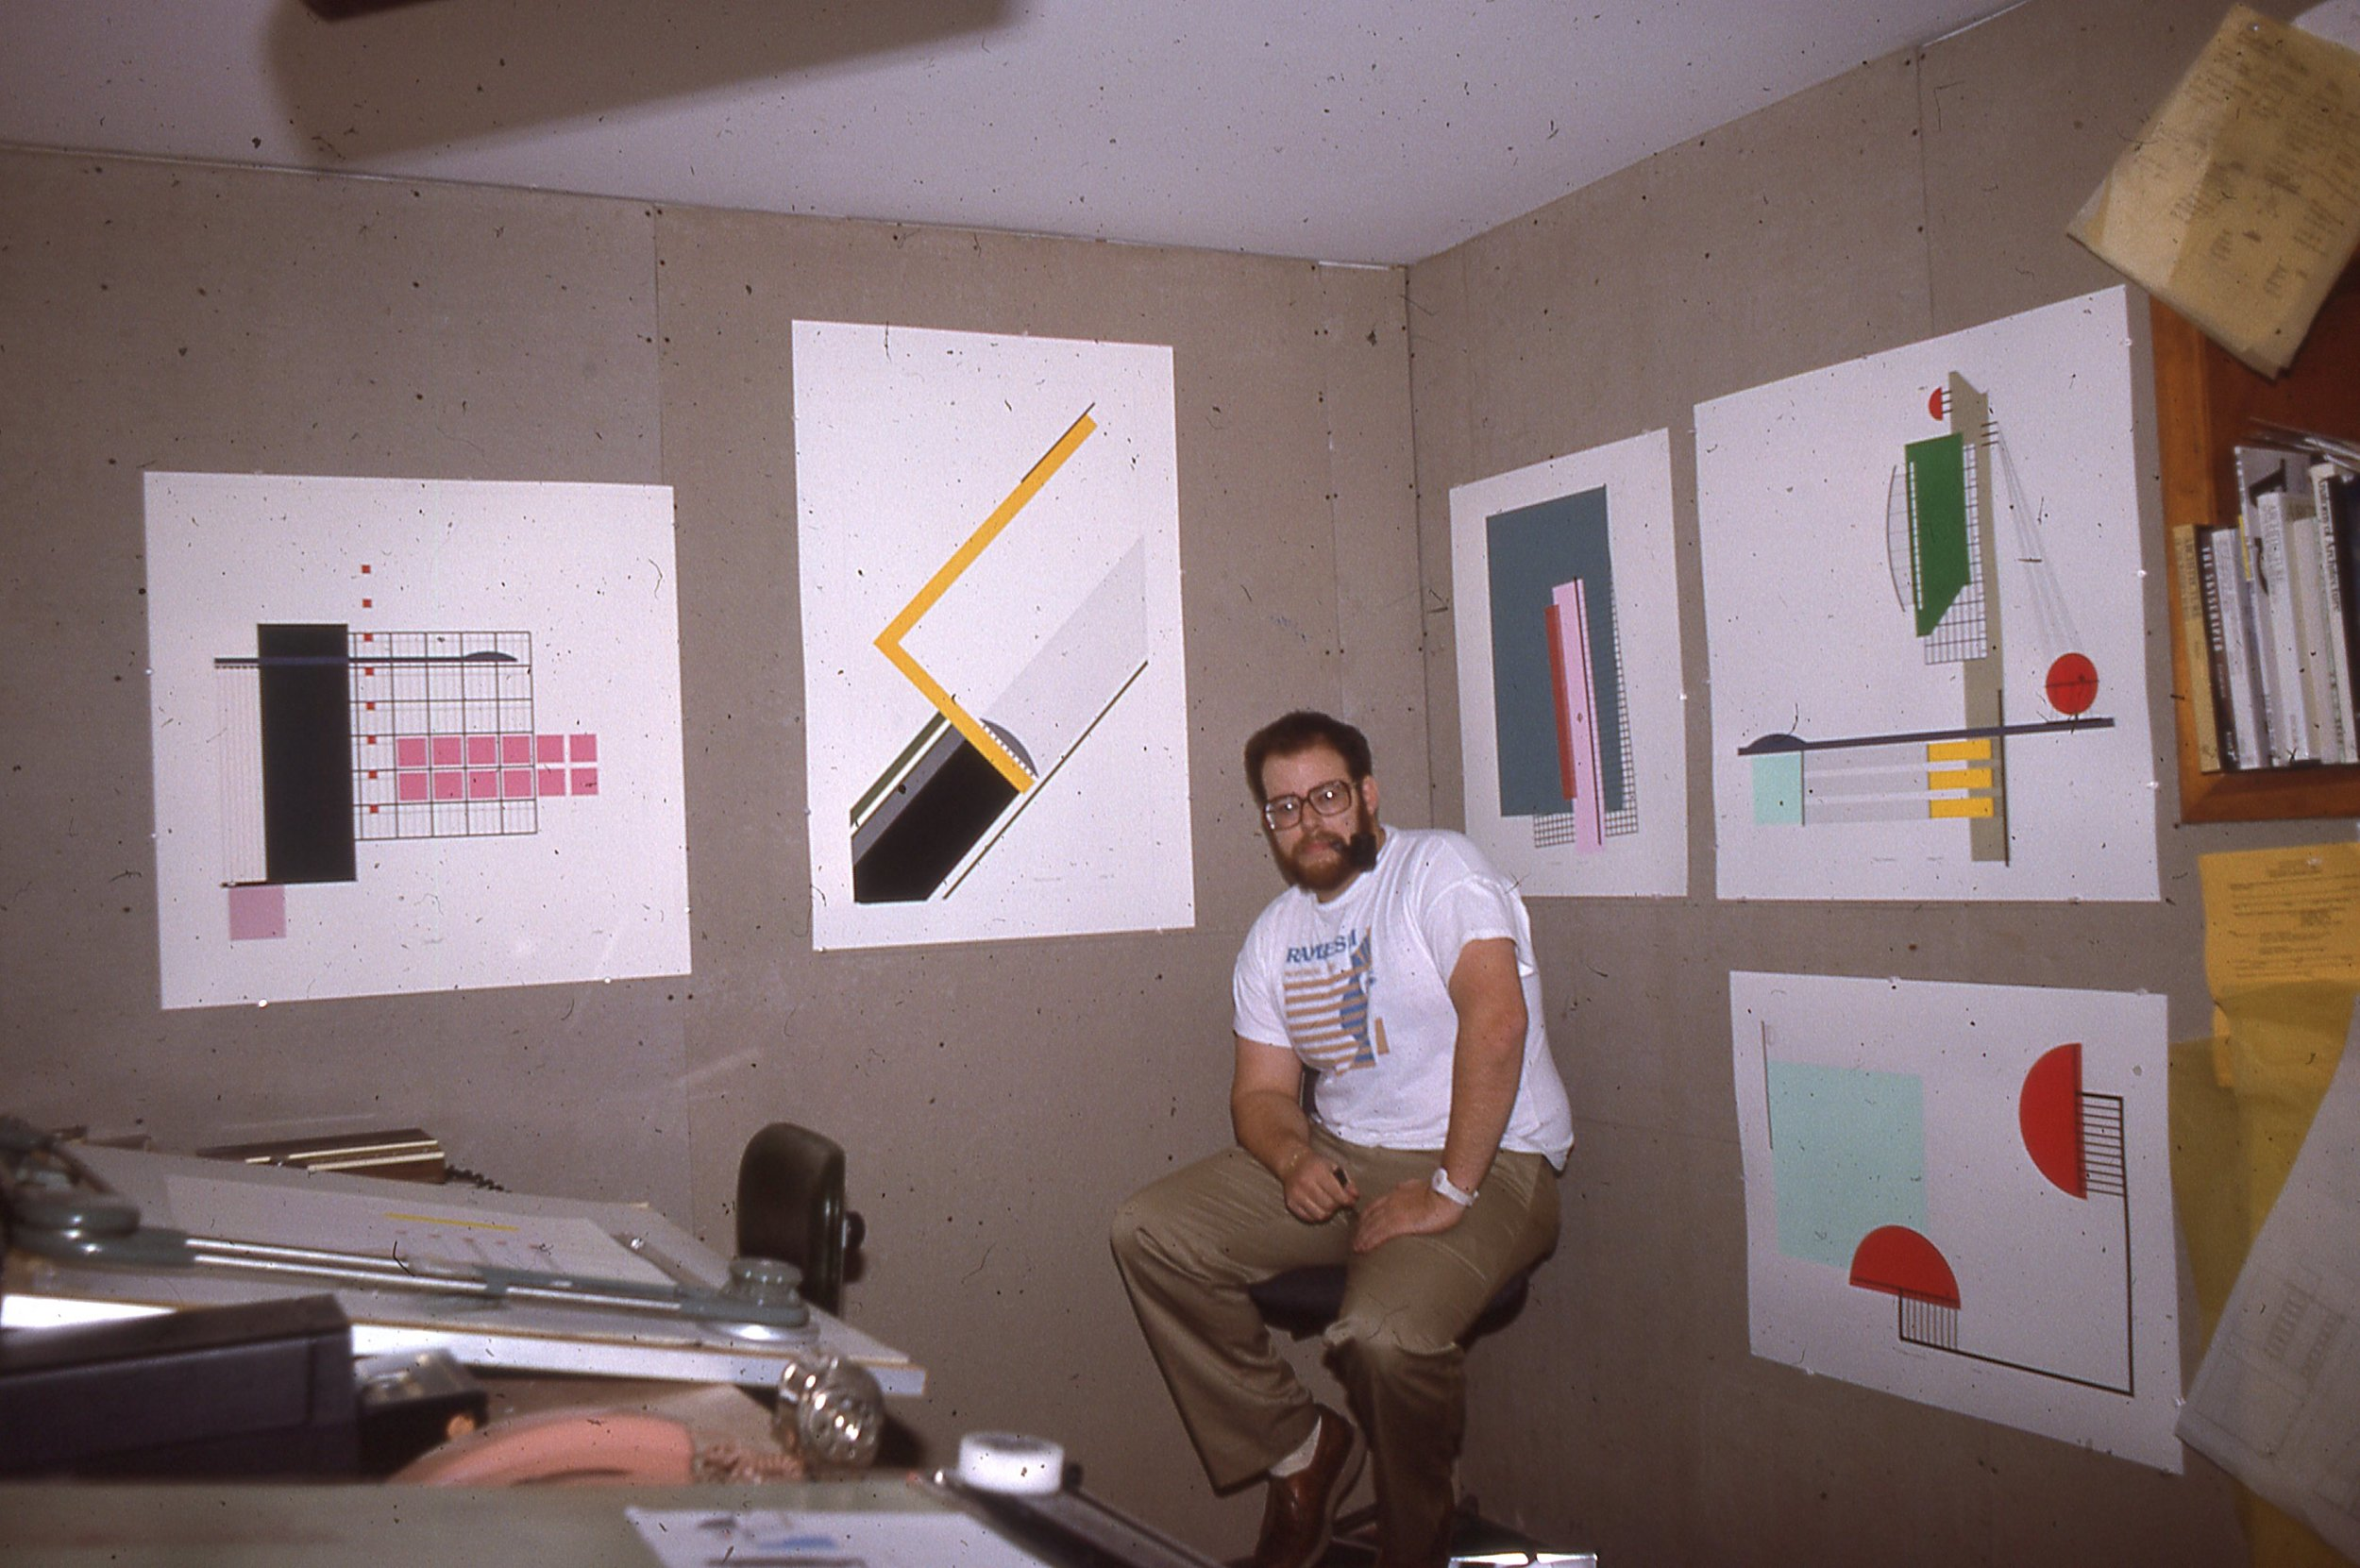 Exploration Studio - Circa 1985 - Hector's first art studio where his journey continued as he explored the creative similarities between art and architecture.